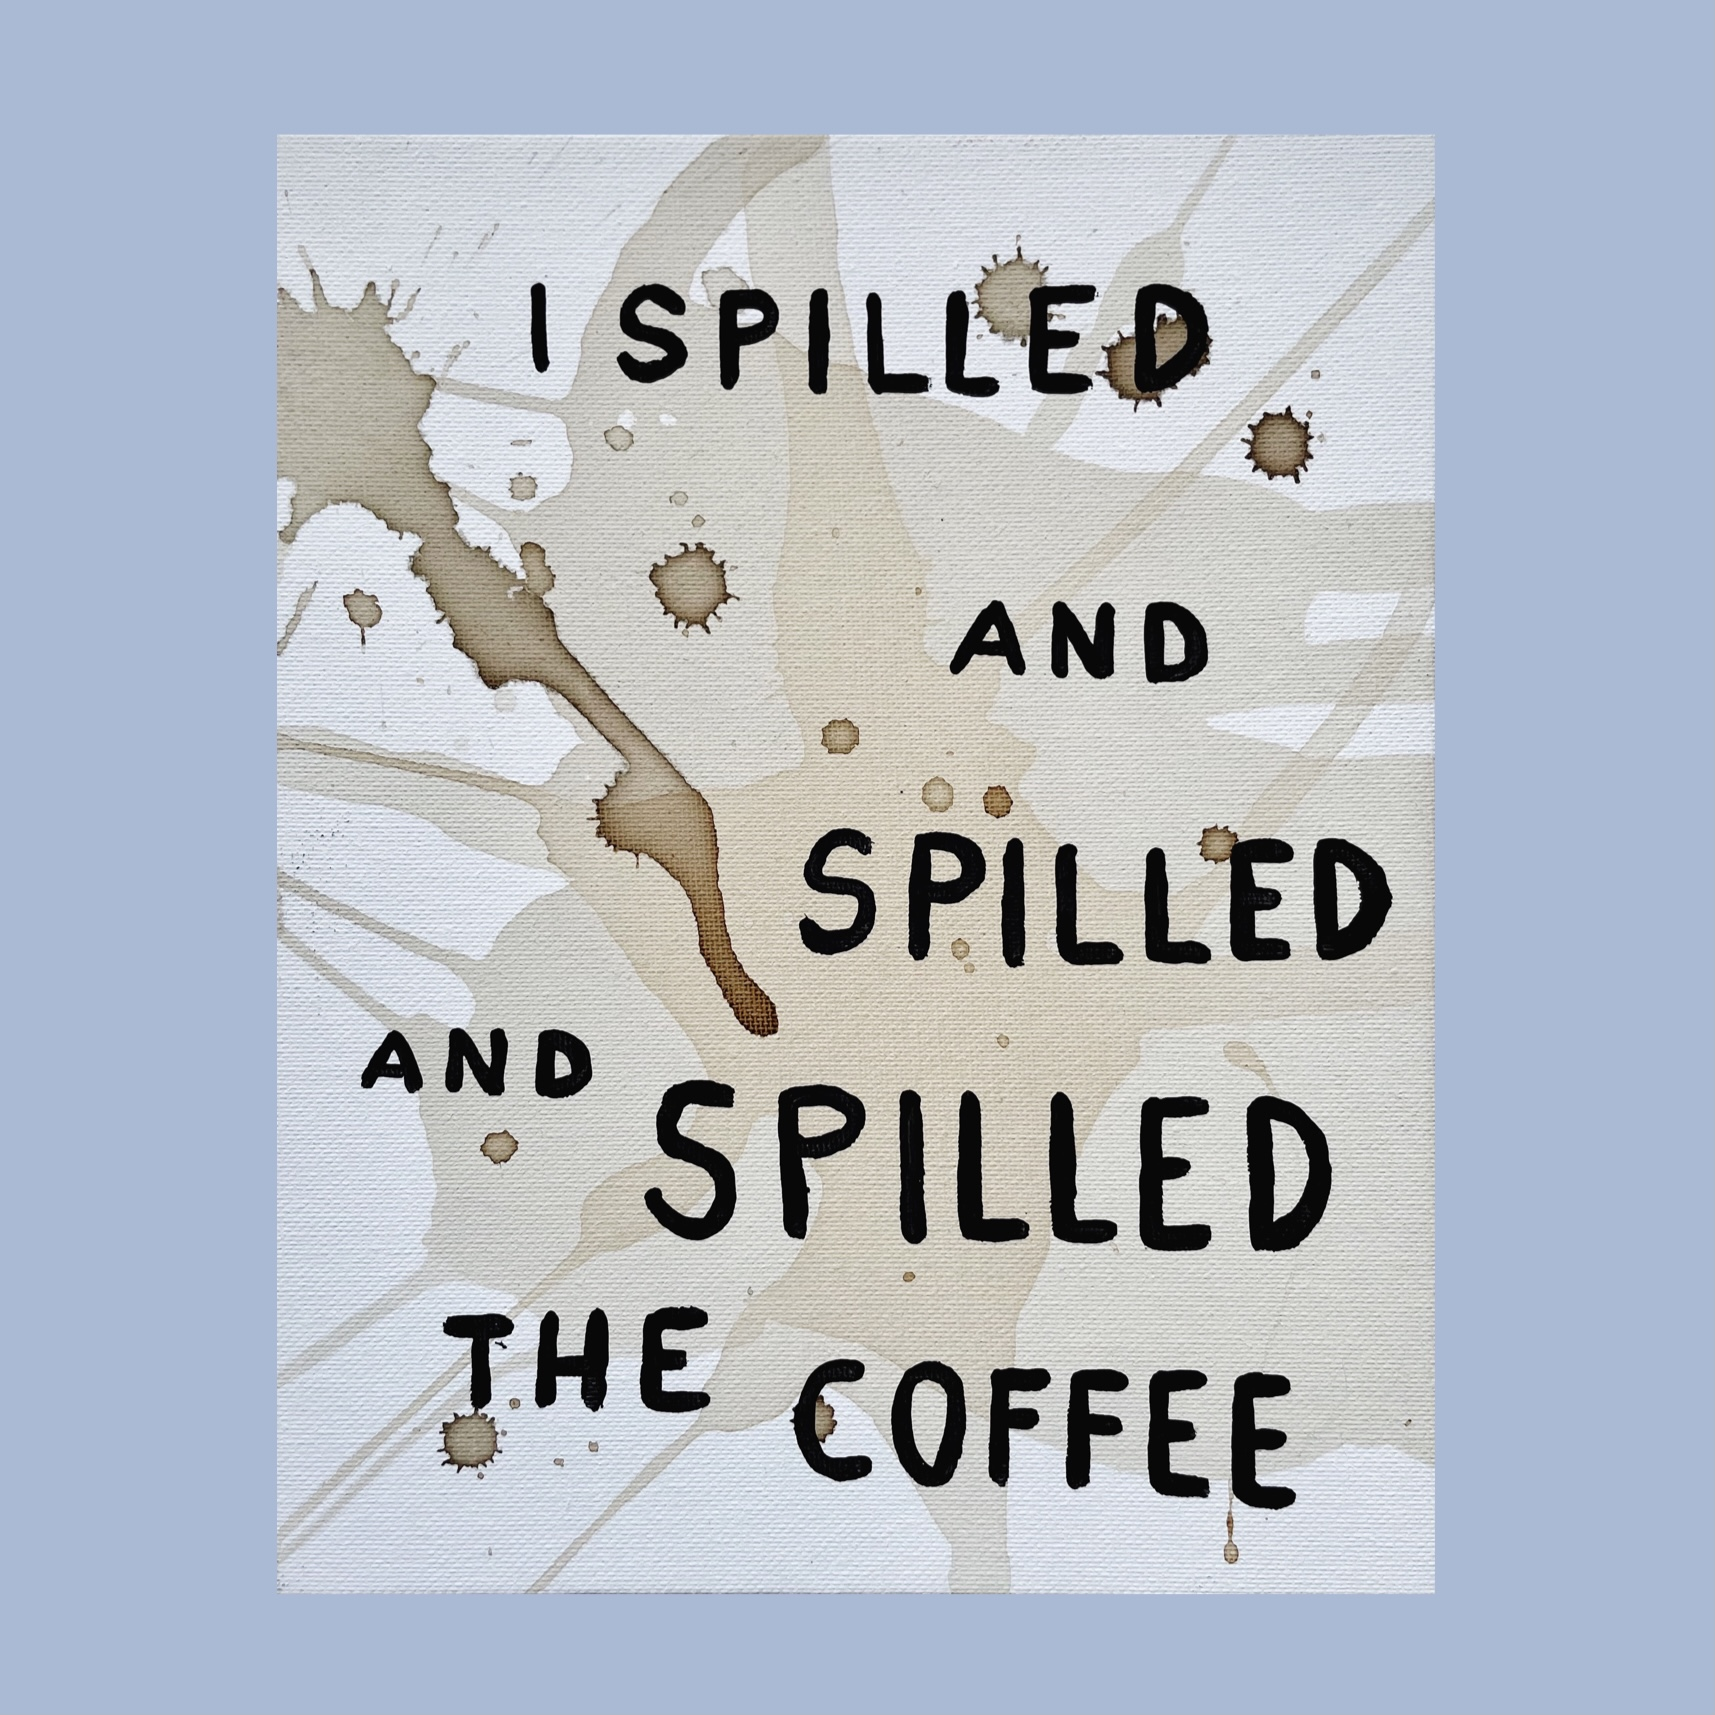 I SPILLED THE COFFEE